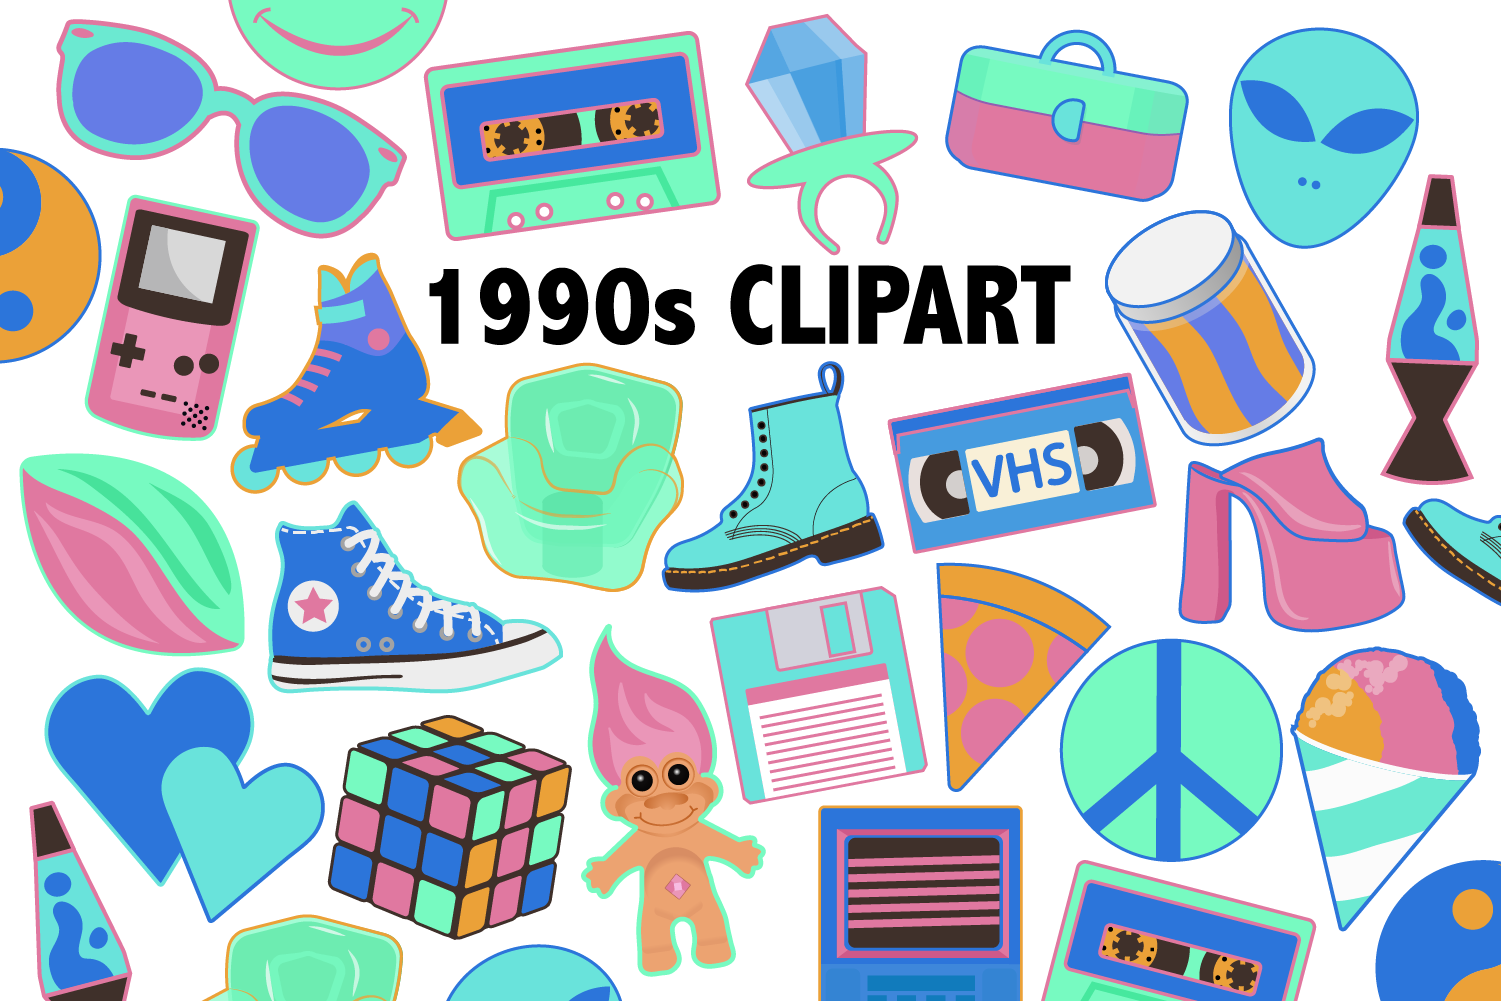 Neon 90s Clipart (Graphic) by Mine Eyes Design in 2020